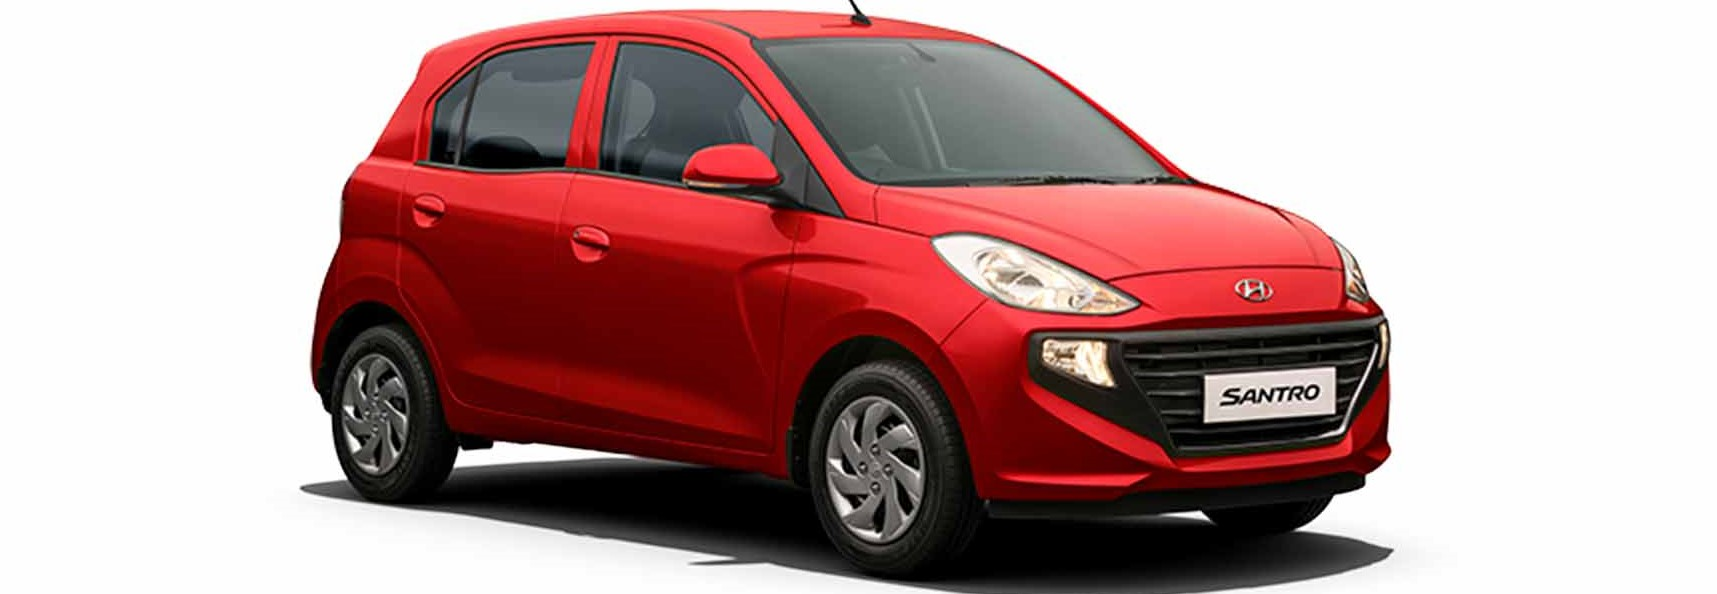 hyundai-santro-automatic-car-affordable